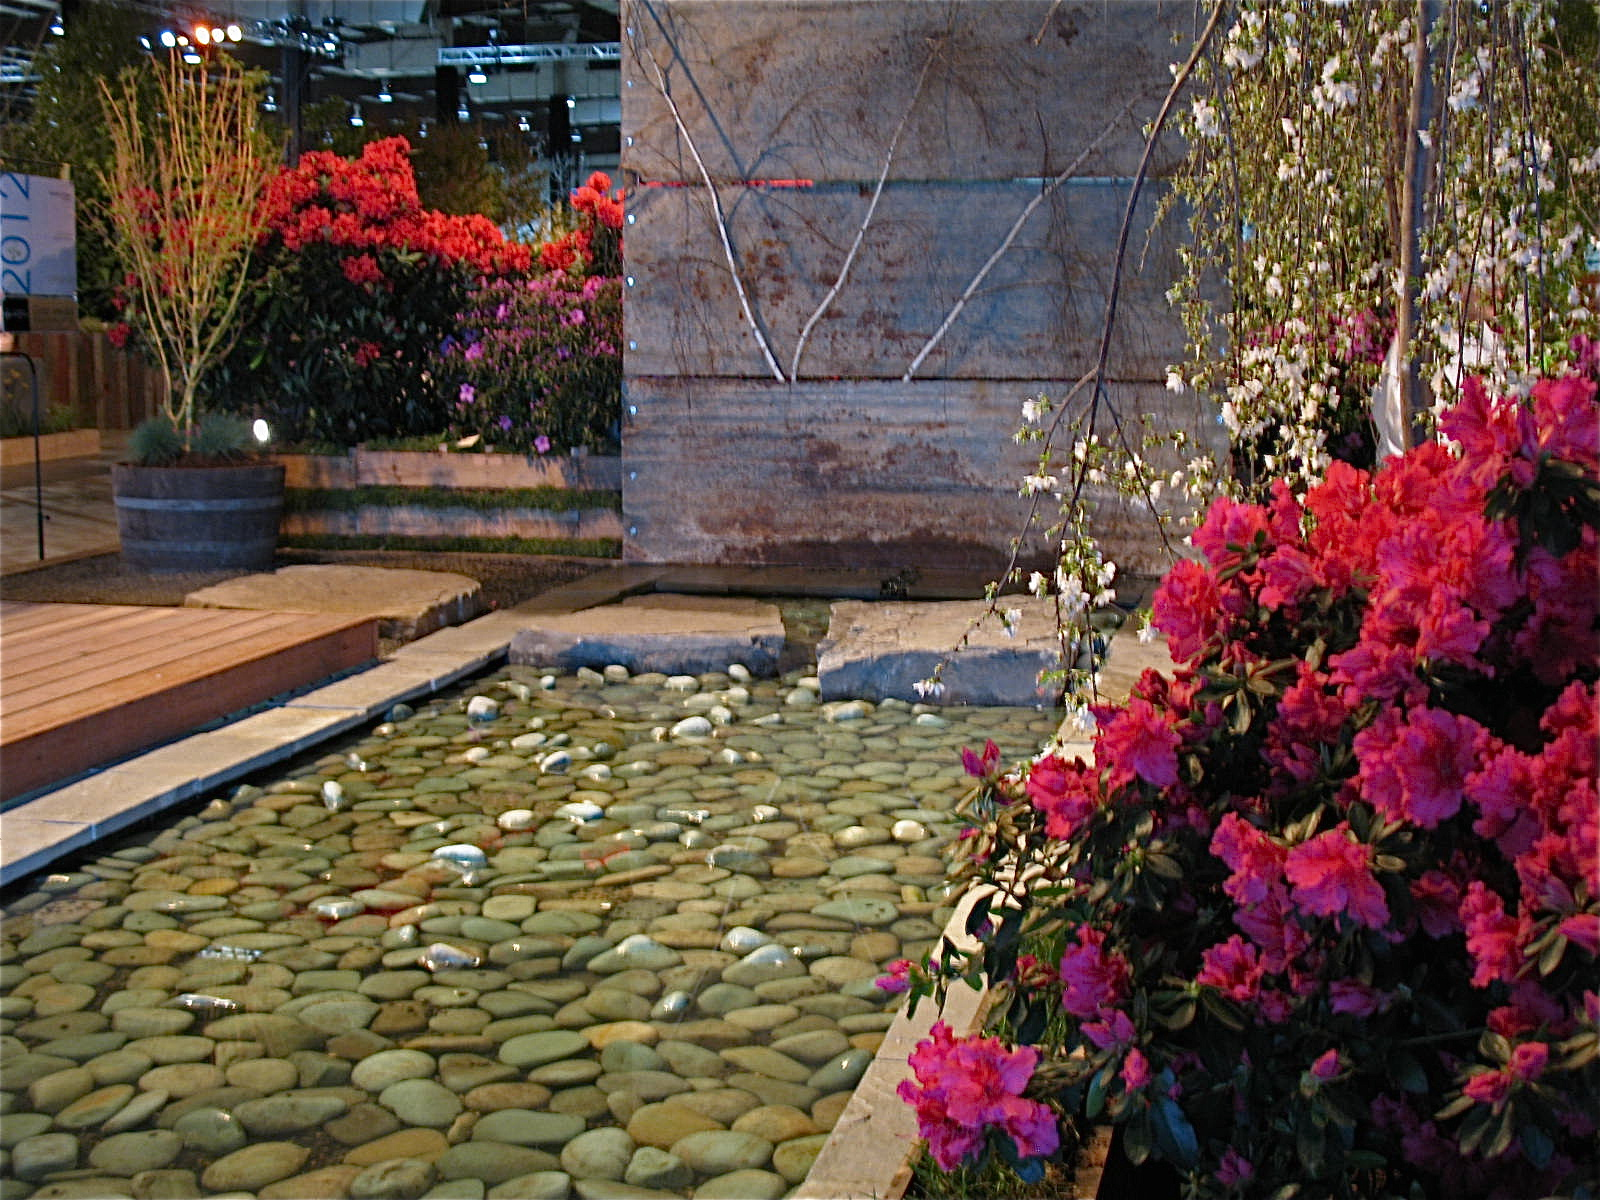 Bay area tendrils san francisco flower and garden show buzz for San francisco flower and garden show